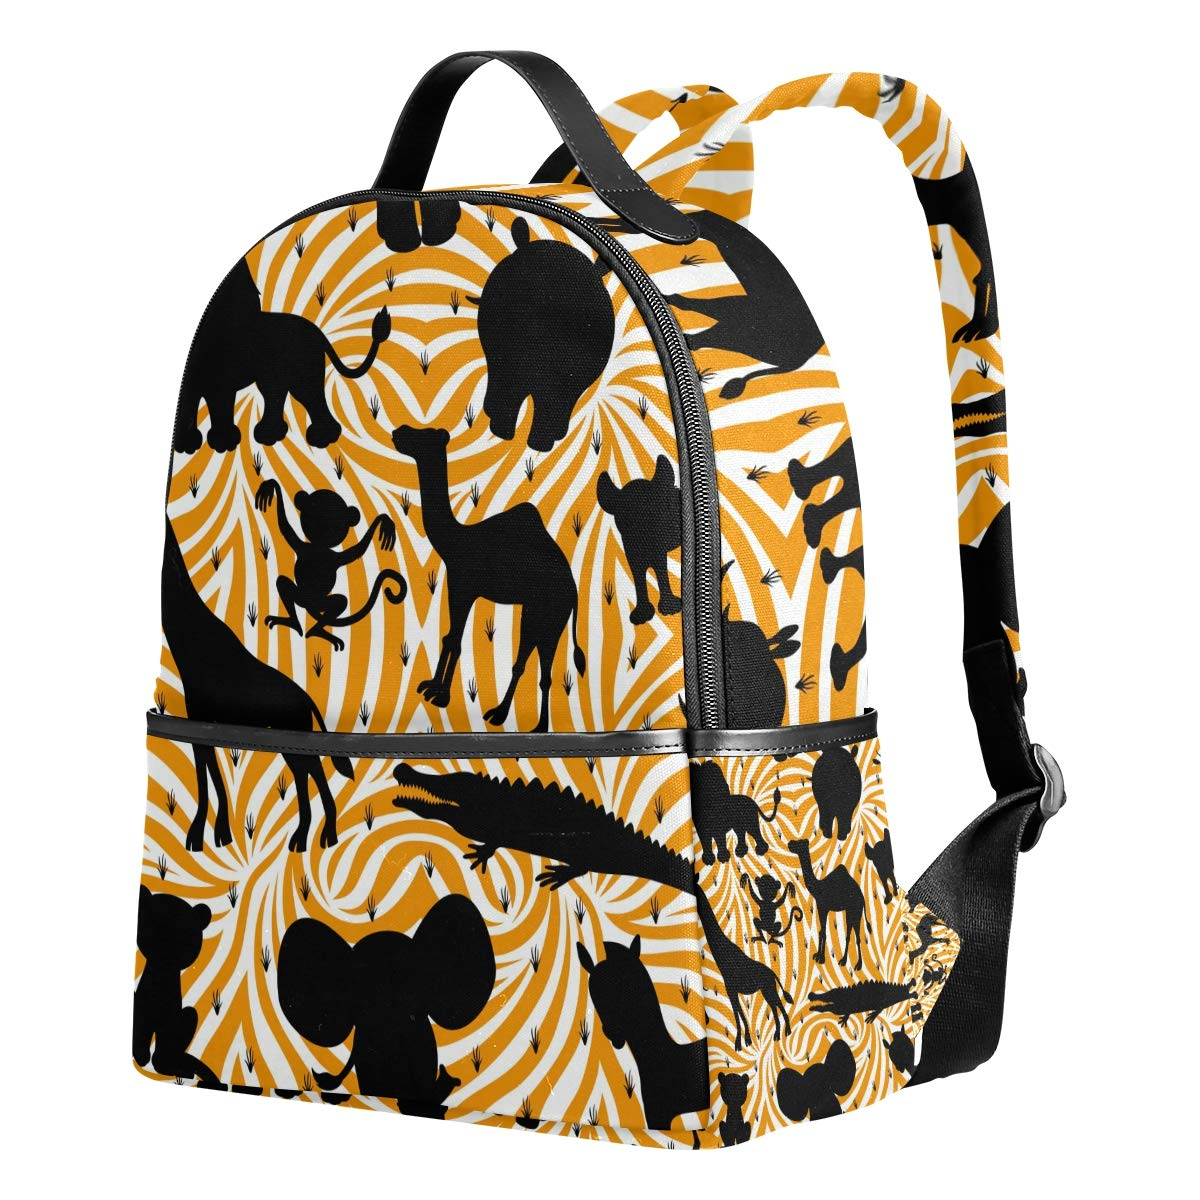 AHOMY African Lion Sports Gym Bag with Shoes Compartment Travel Duffel Bag